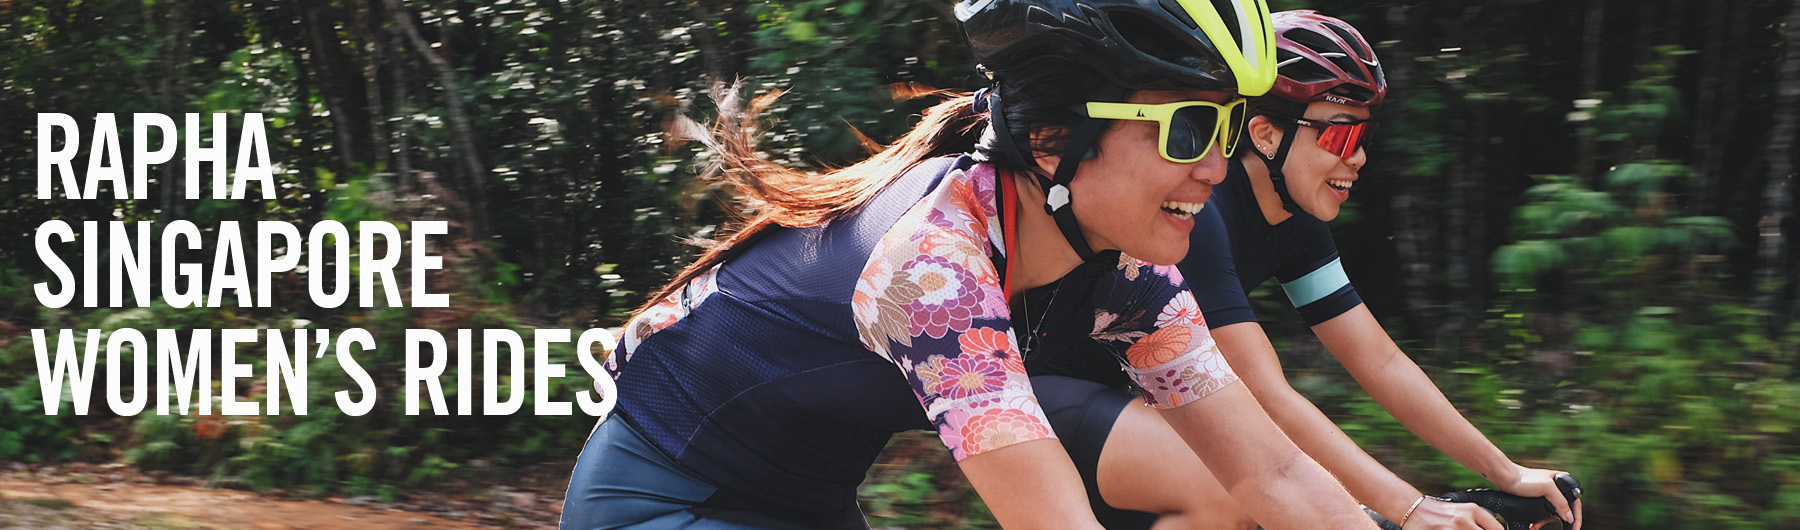 Rapha Singapore Monthly Women's Ride | 7.00am, 6 May 2018 | Macritchie Reservoir Drop Off